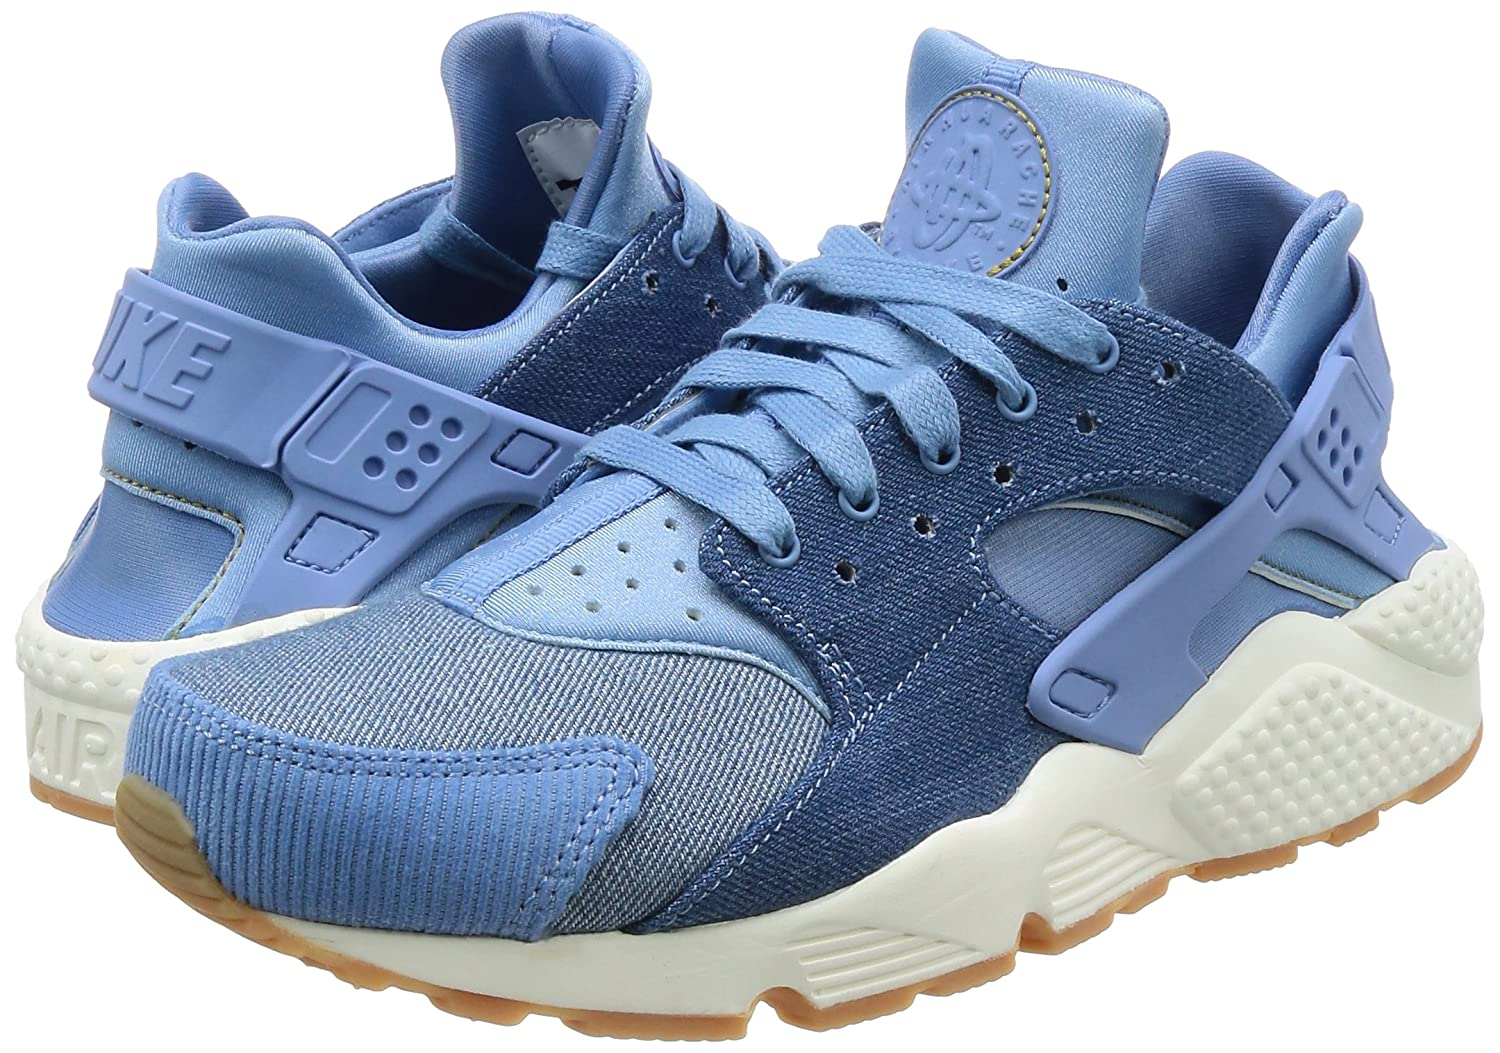 42699a3b935c6 ... clearance amazon nike womens air huarache run se running shoe road  running b62d8 91847